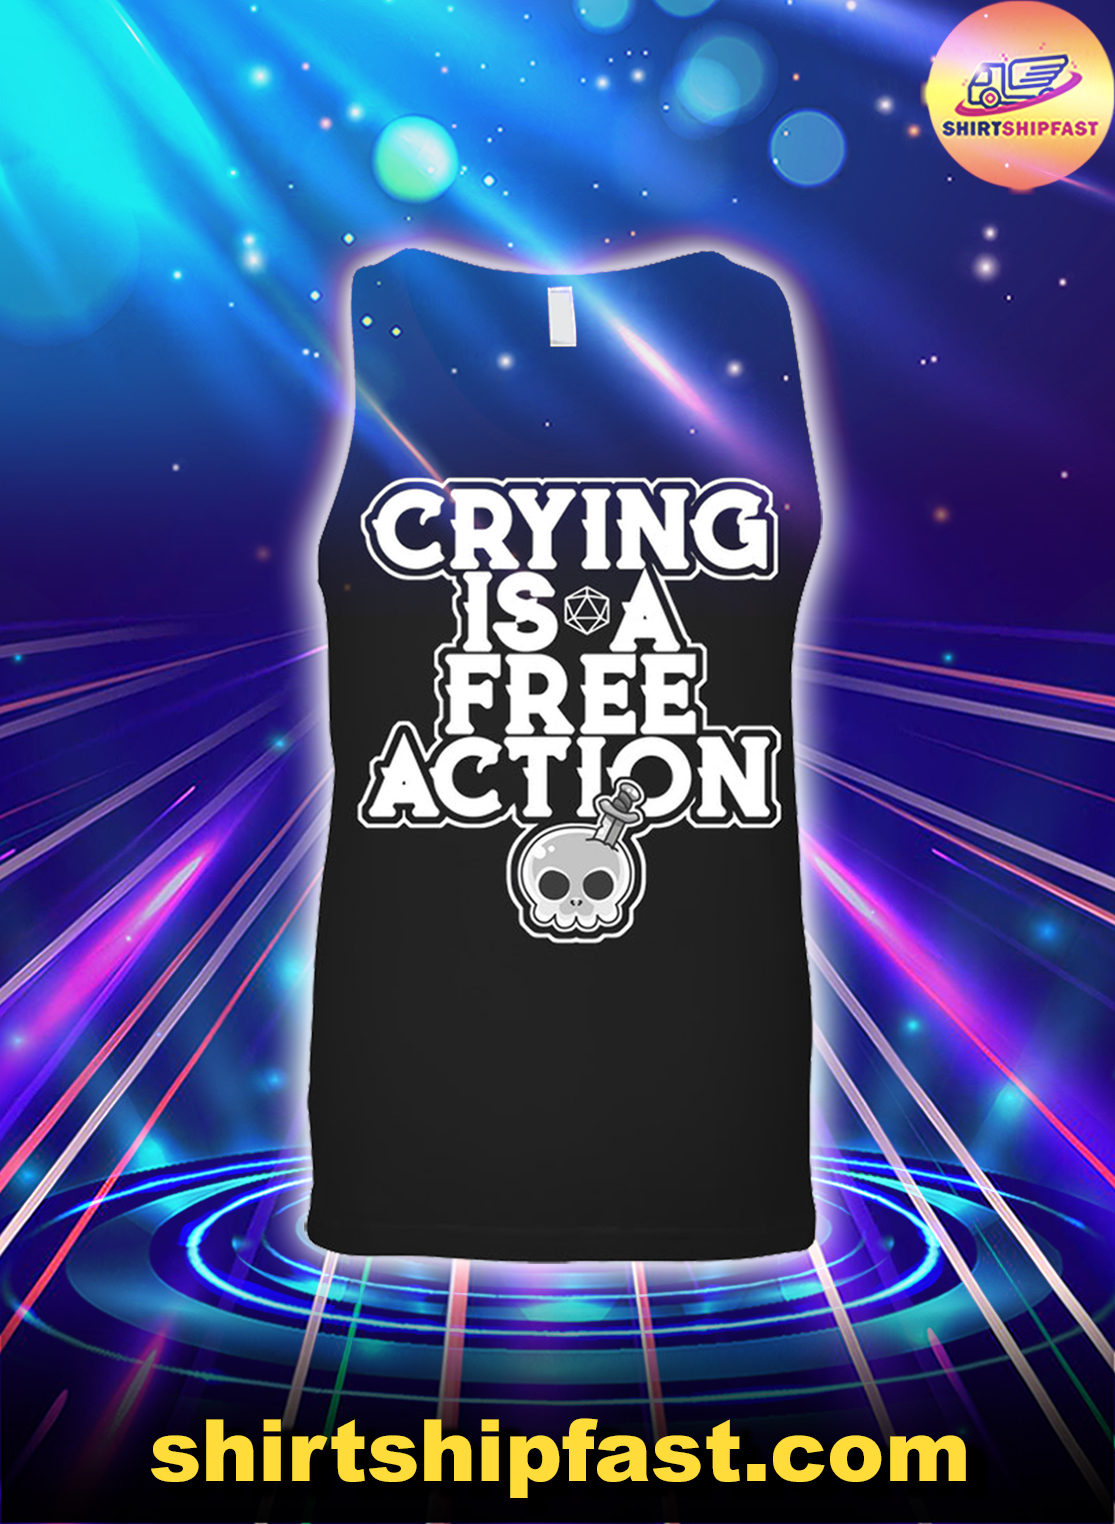 Skull Crying is a free action tank top